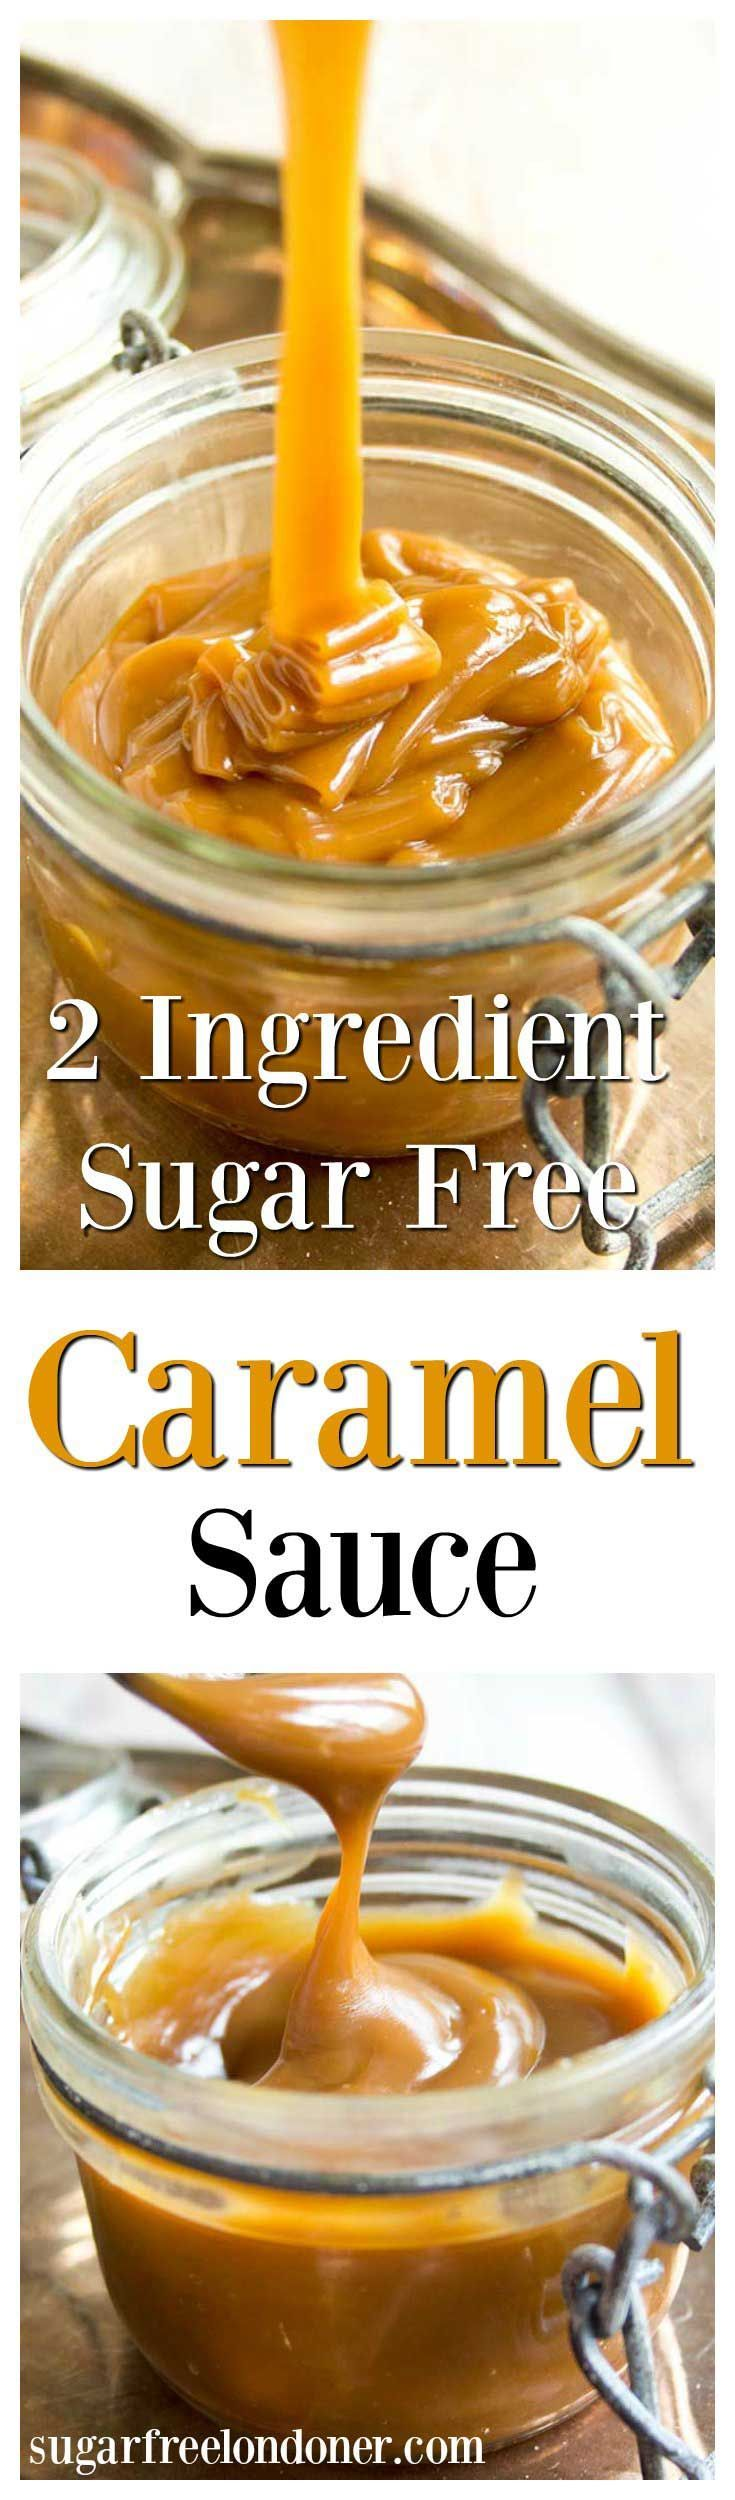 The best things in life are simple - like this 2 ingredient sugar free caramel sauce. Low carb, vegan and delicious, it can be used in candy or as a topping for ice cream, cakes, pancakes or waffles.